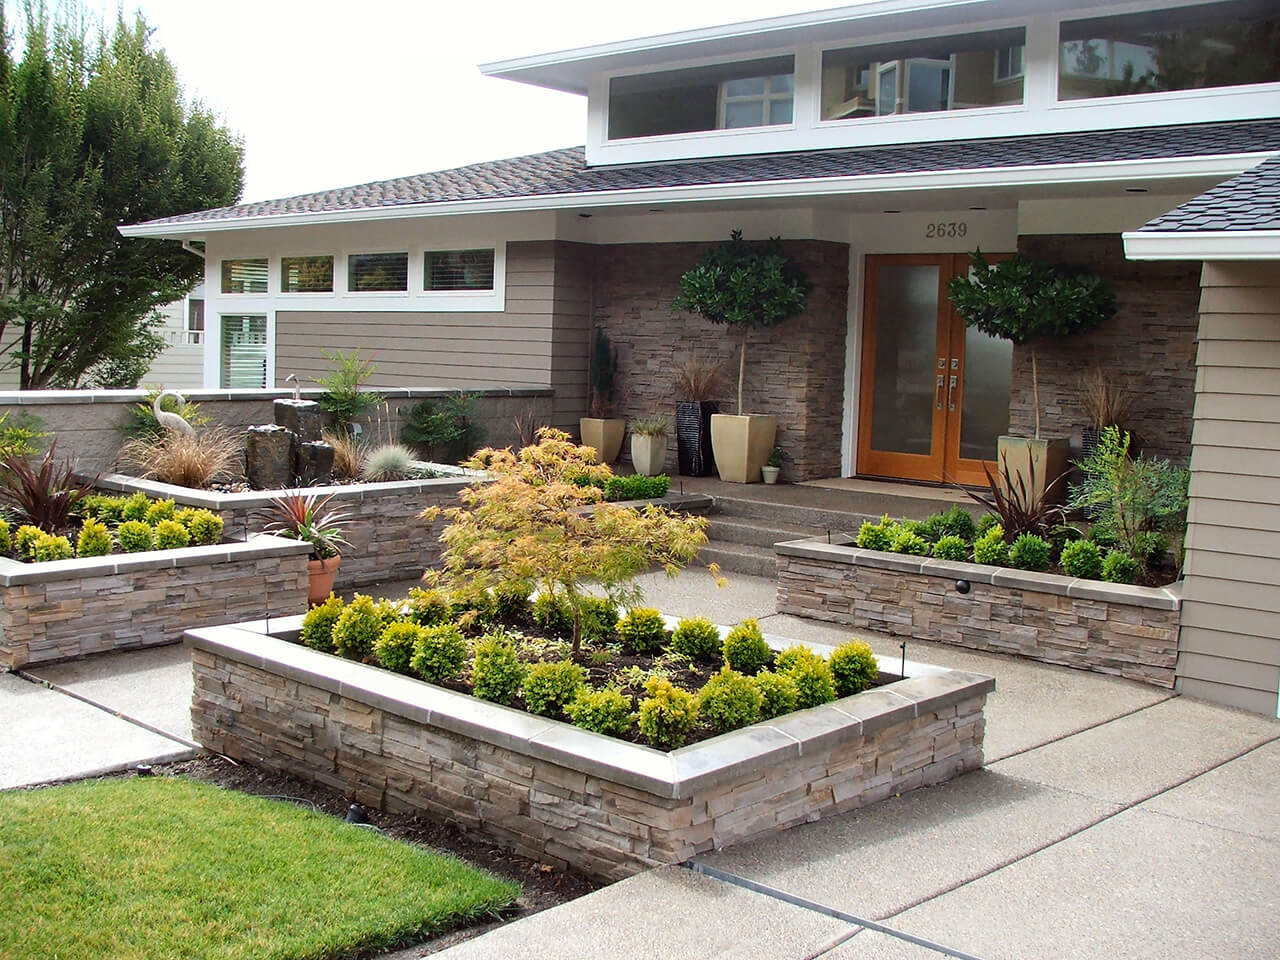 50 best front yard landscaping ideas and garden designs for Landscape garden design ideas